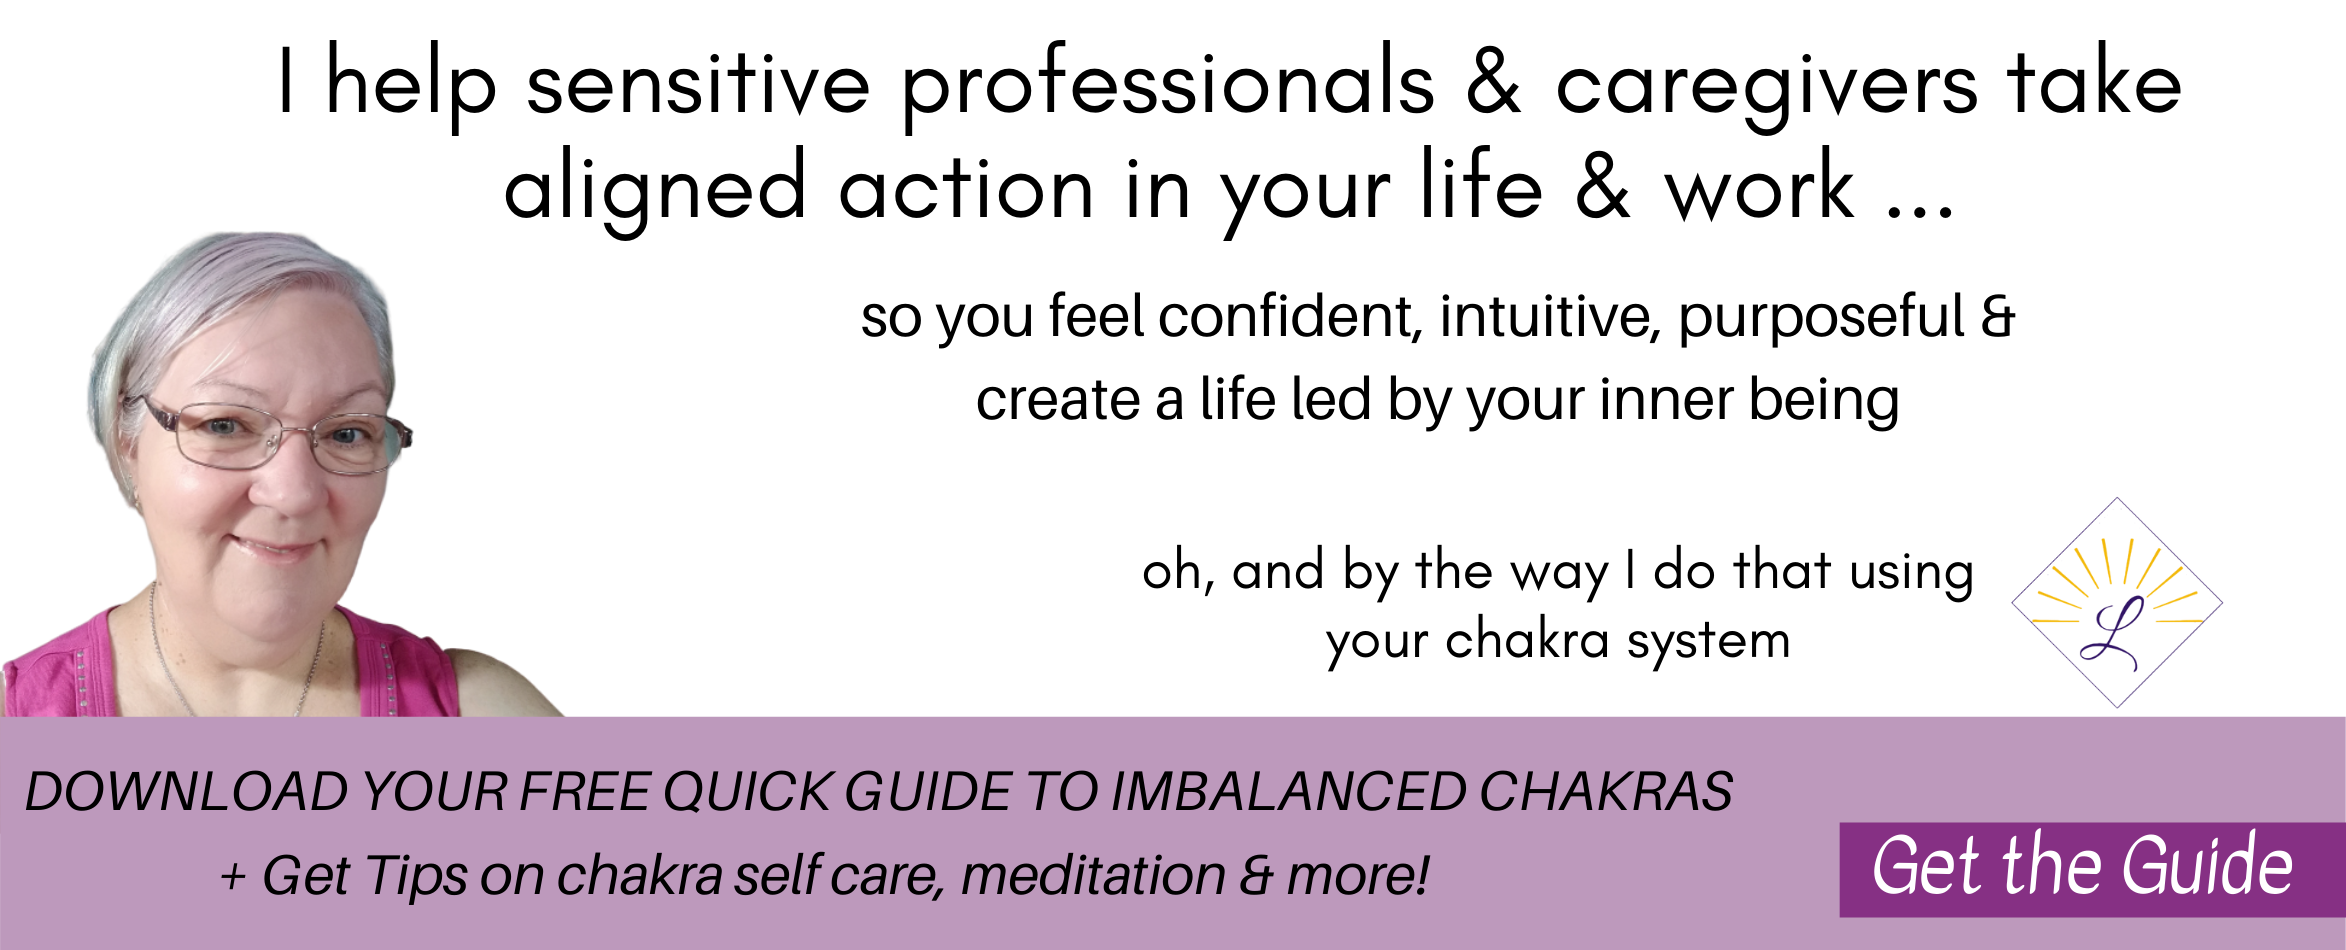 chakra balancing and healing for sensitive women and caregivers, intuitive guidance, meditation, reset your energy